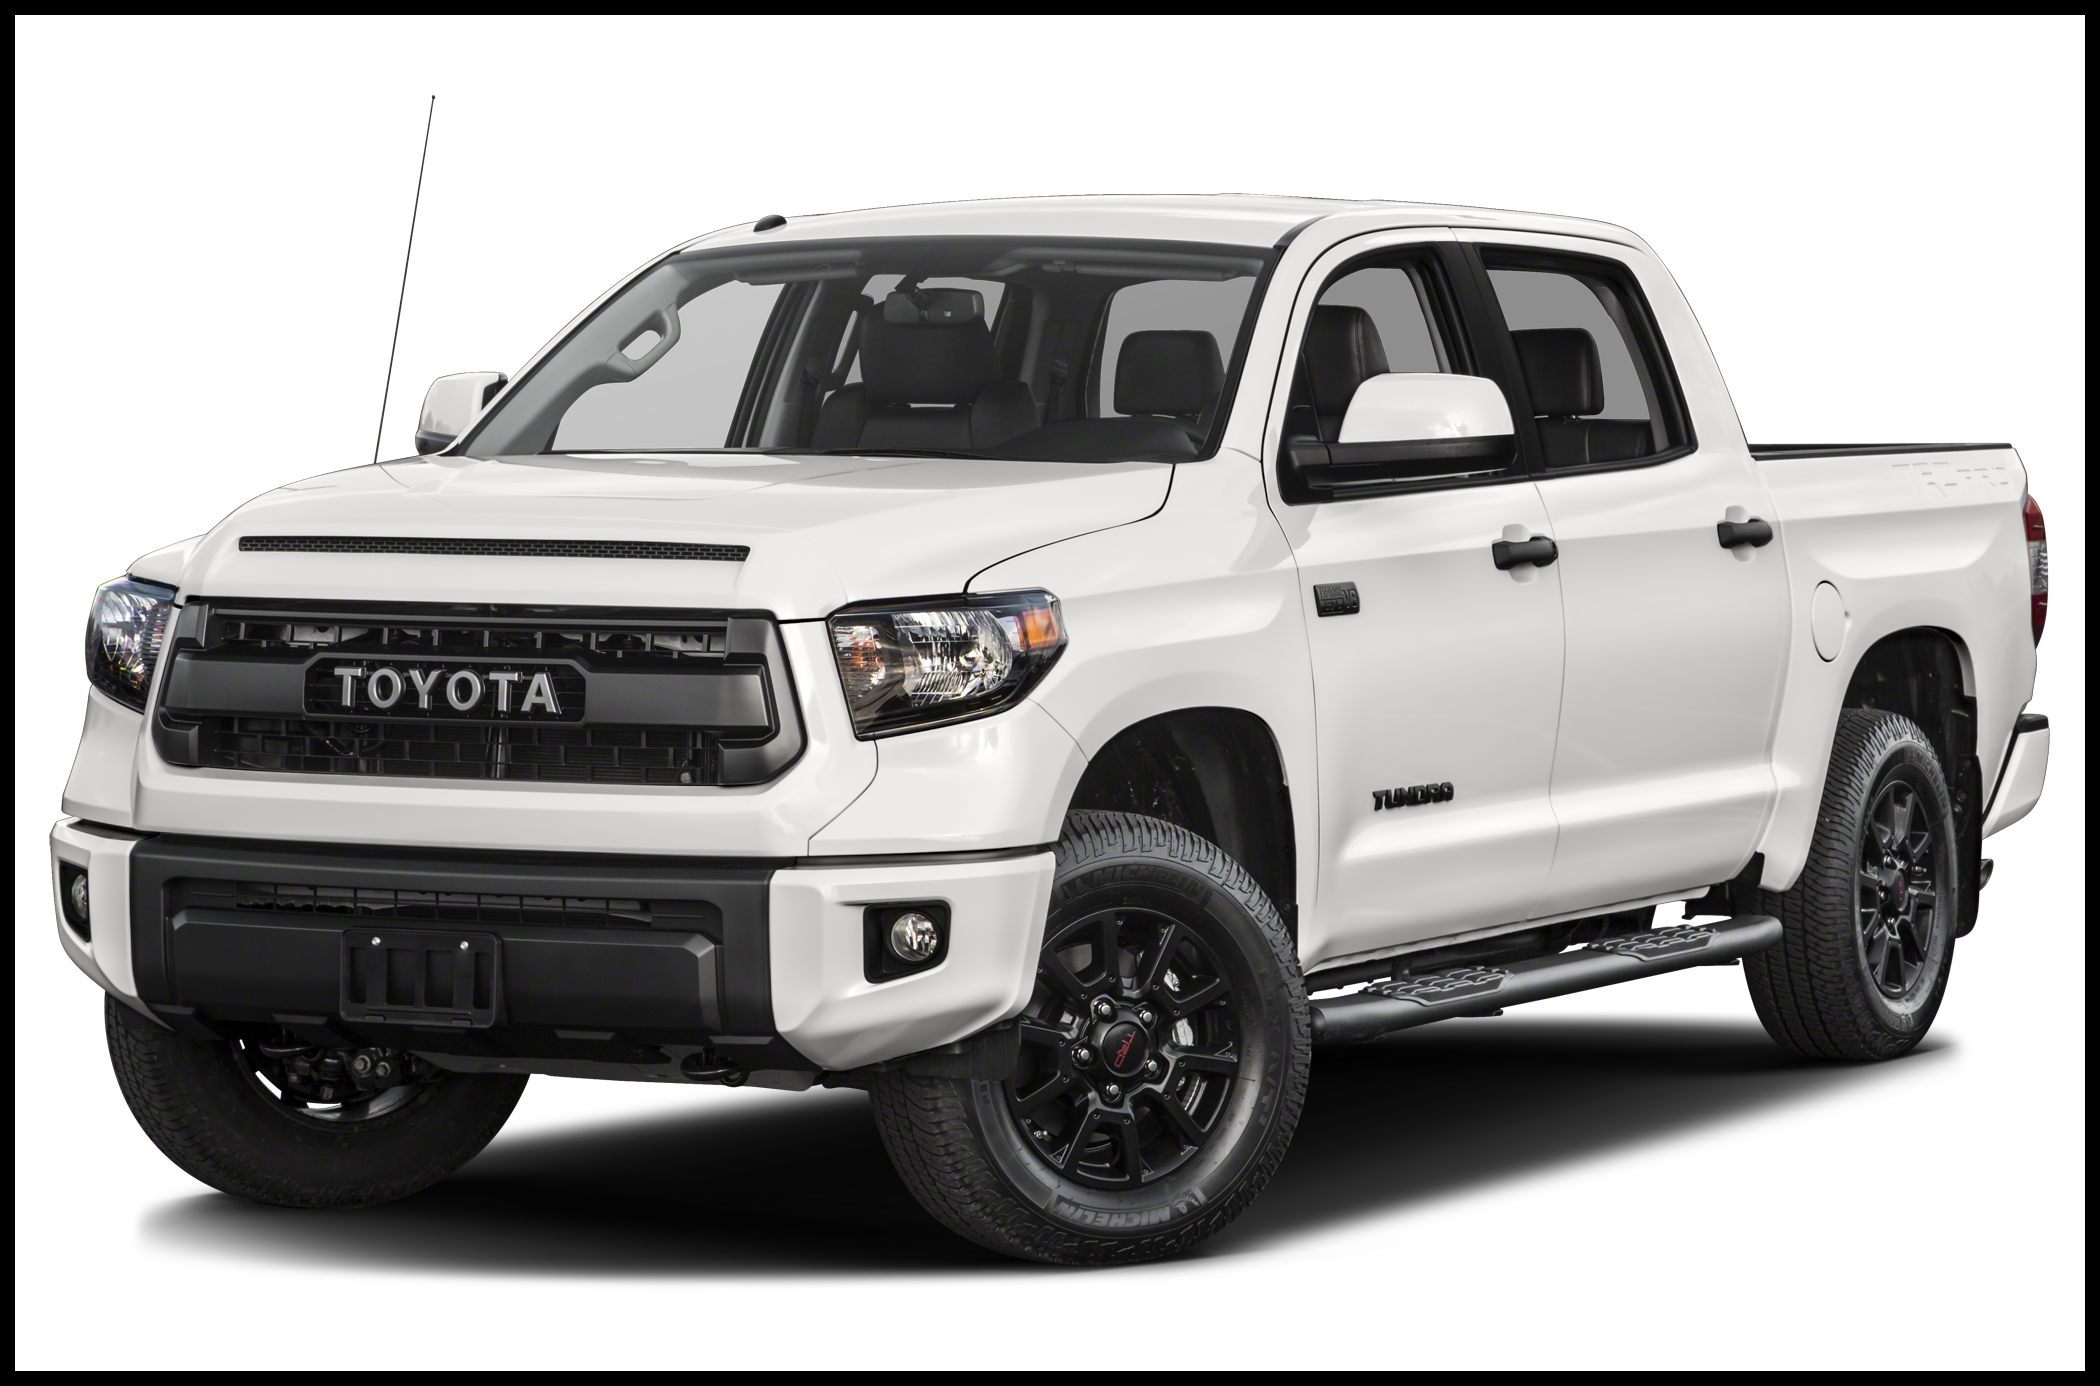 2017 Toyota Tundra TRD Pro 5 7L V8 4x4 CrewMax 5 6 ft box 145 7 in WB Pricing and Options